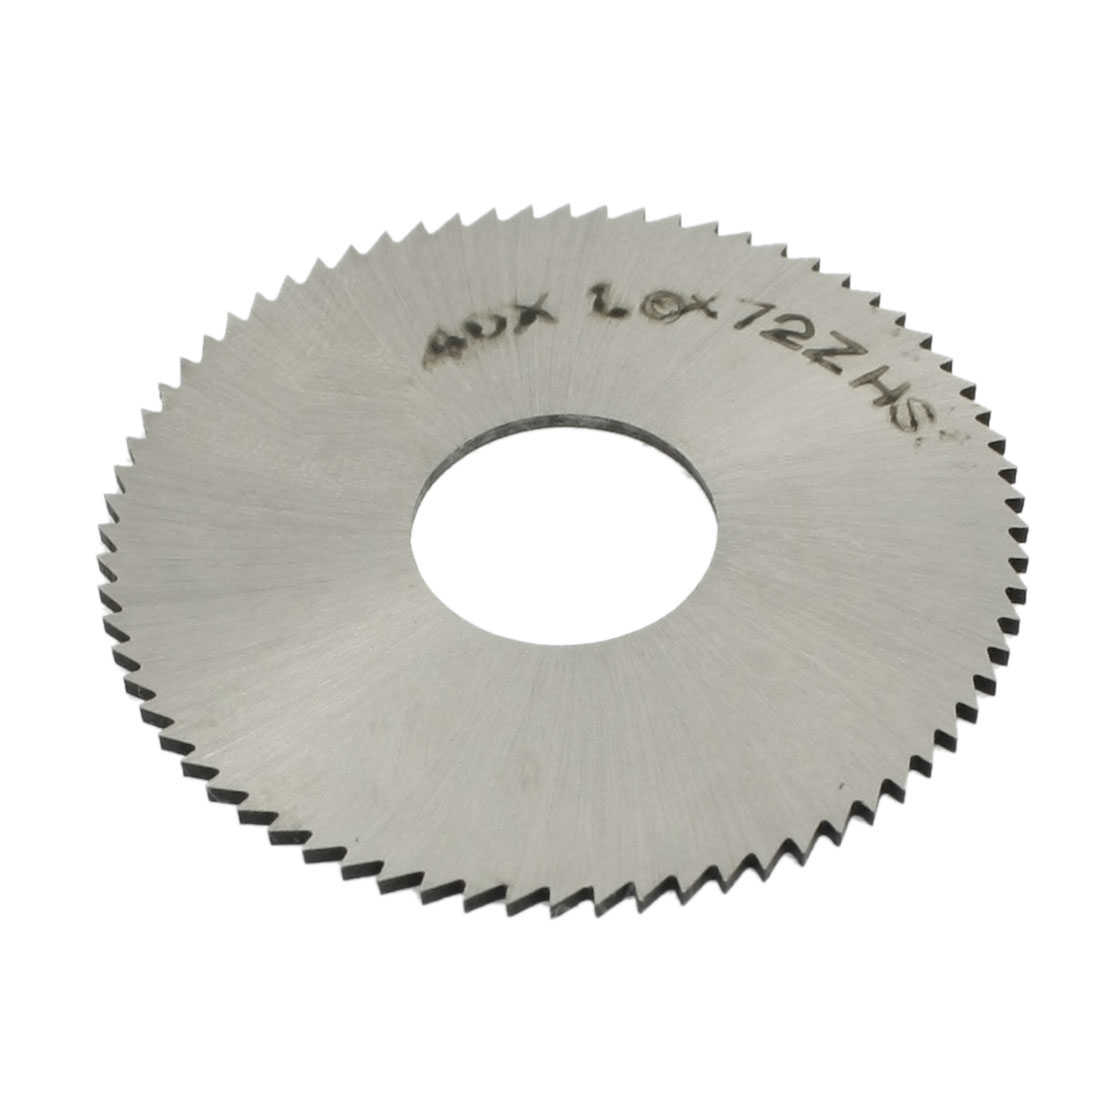 Unique Bargains Silver Tone Toothed 40mm x 1mm x 13mm 72T HSS Saw Blade Milling Cutter